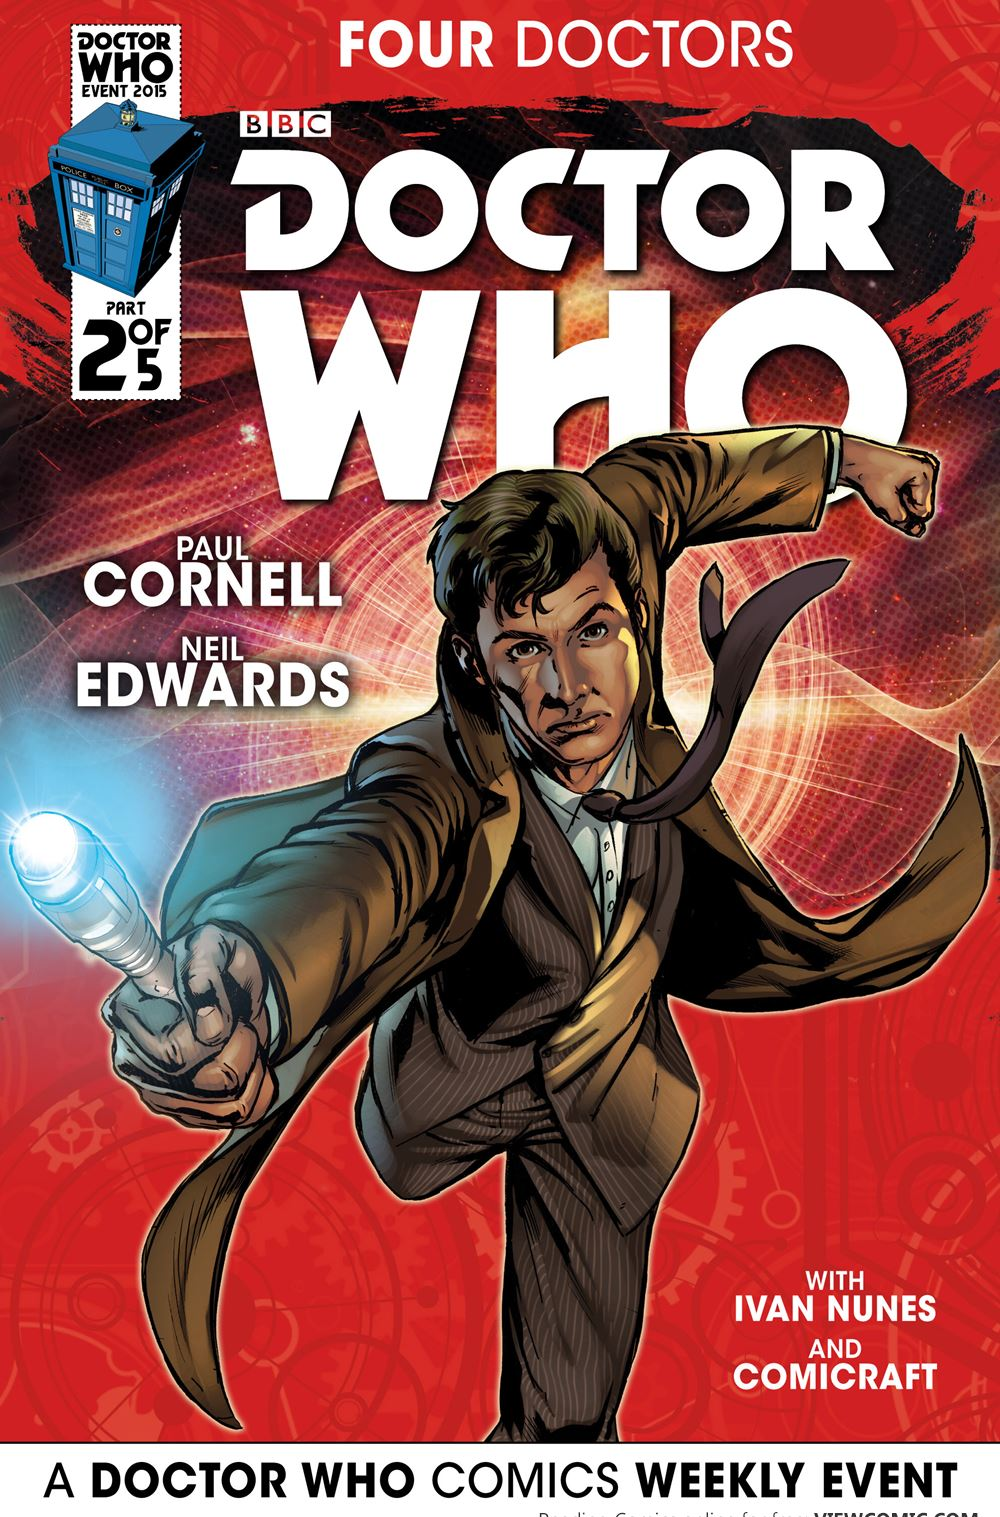 Doctor Who 2015 Event The Four Doctors | Viewcomic reading